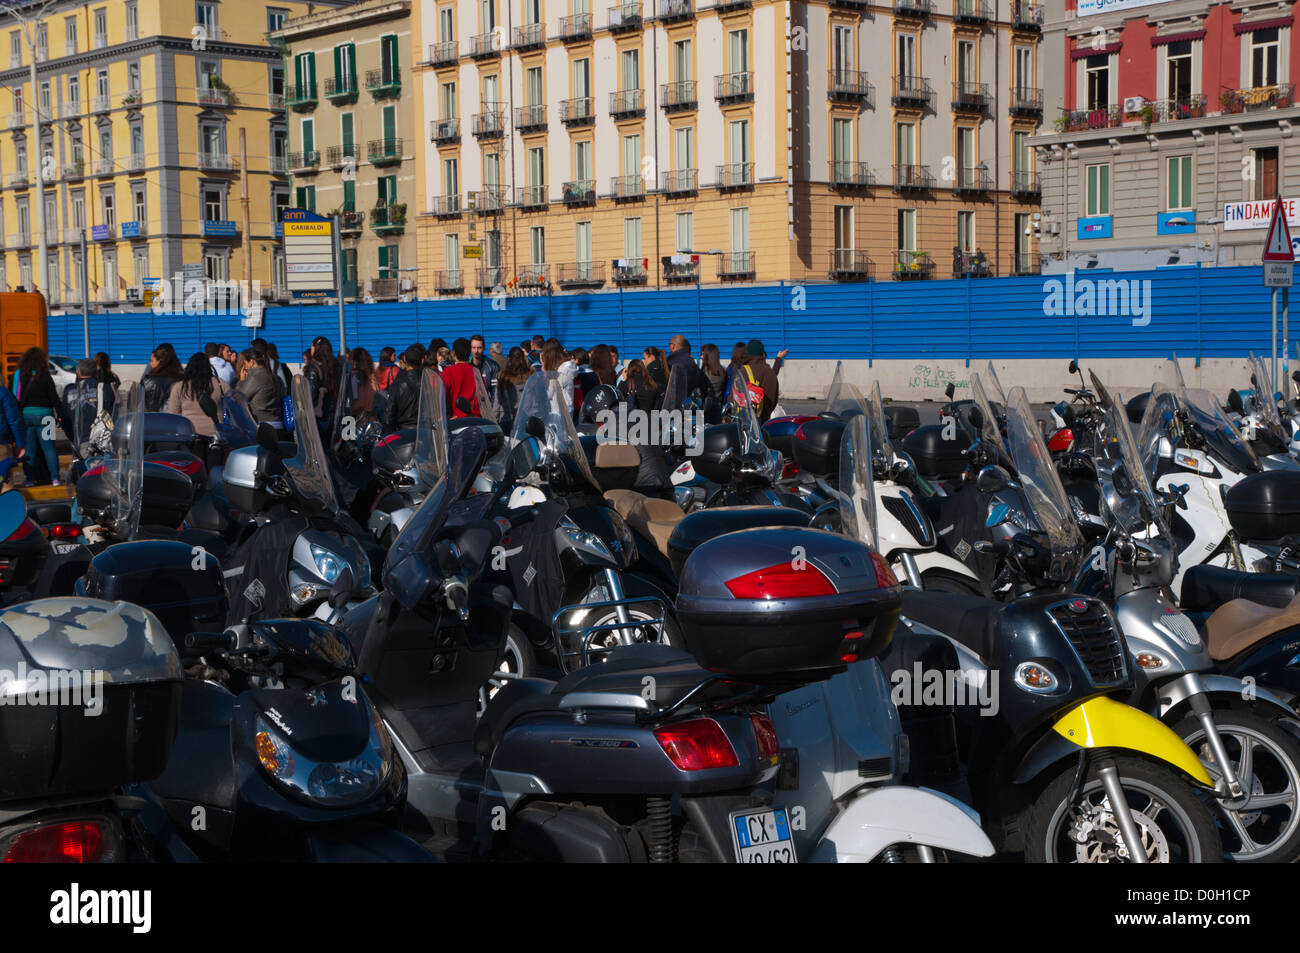 Scooters parked in front of central railway station Piazza Garibaldi square central Naples Italy - Stock Image